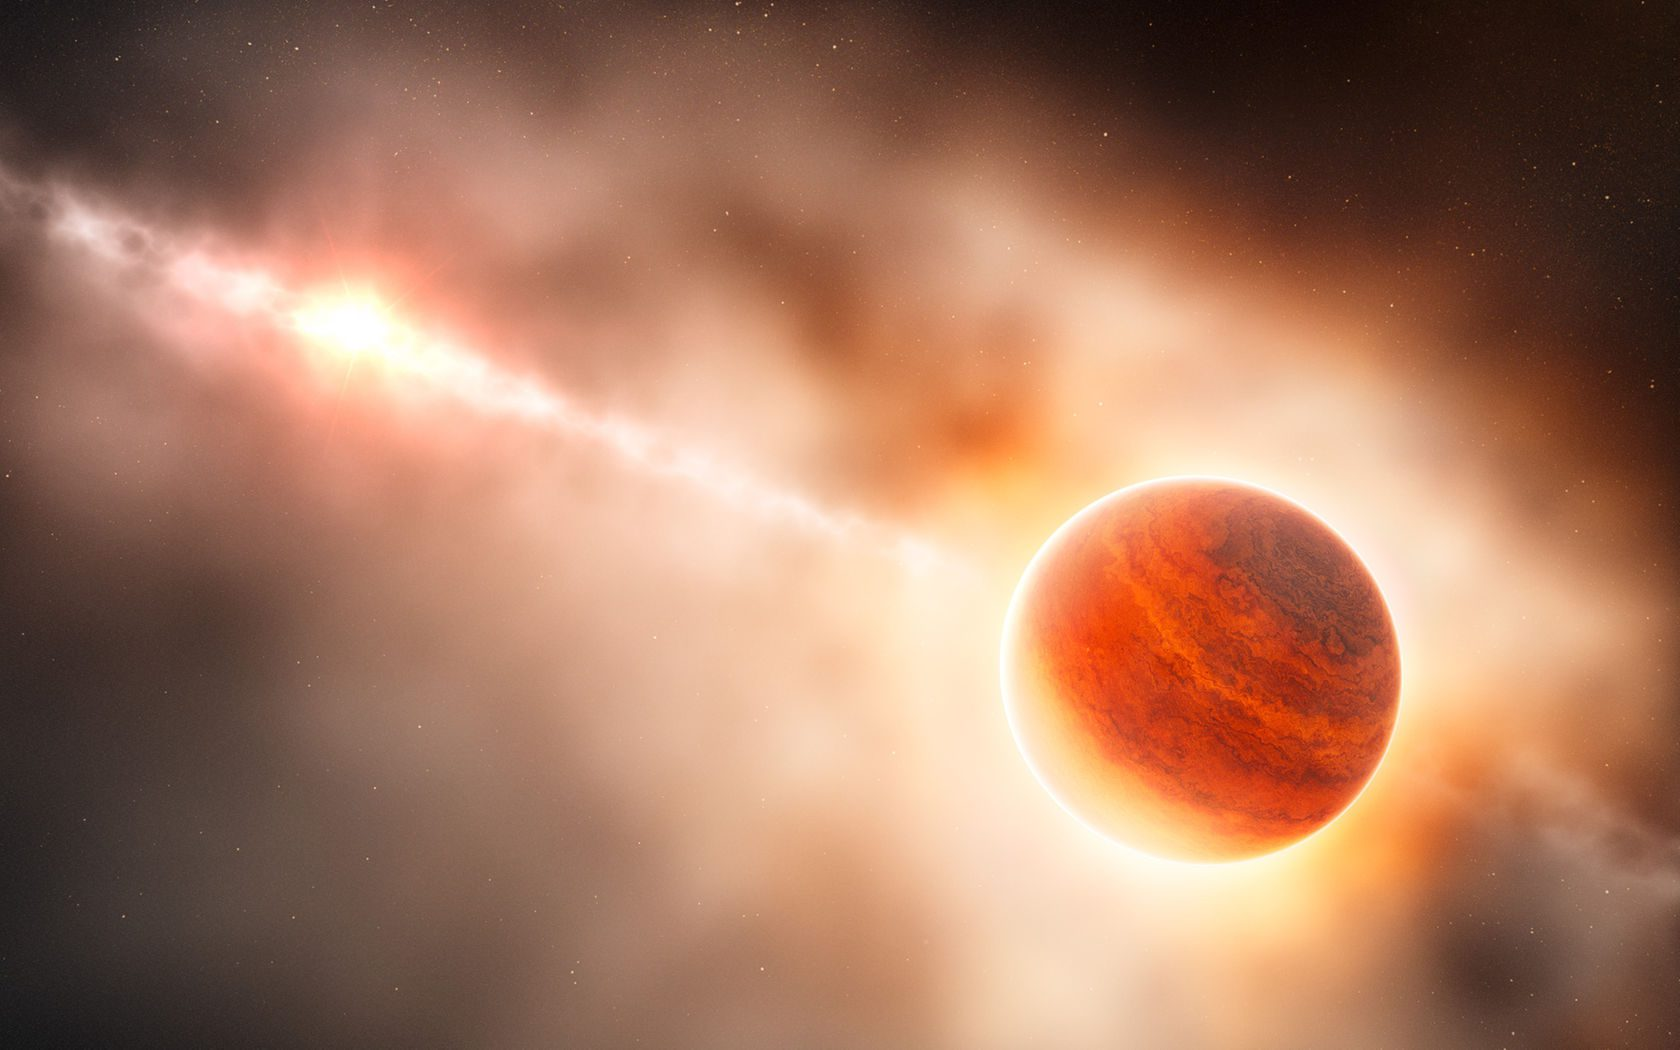 gas giant planet forming around young star Yıldız Astrofiziği: Virial Teoremi